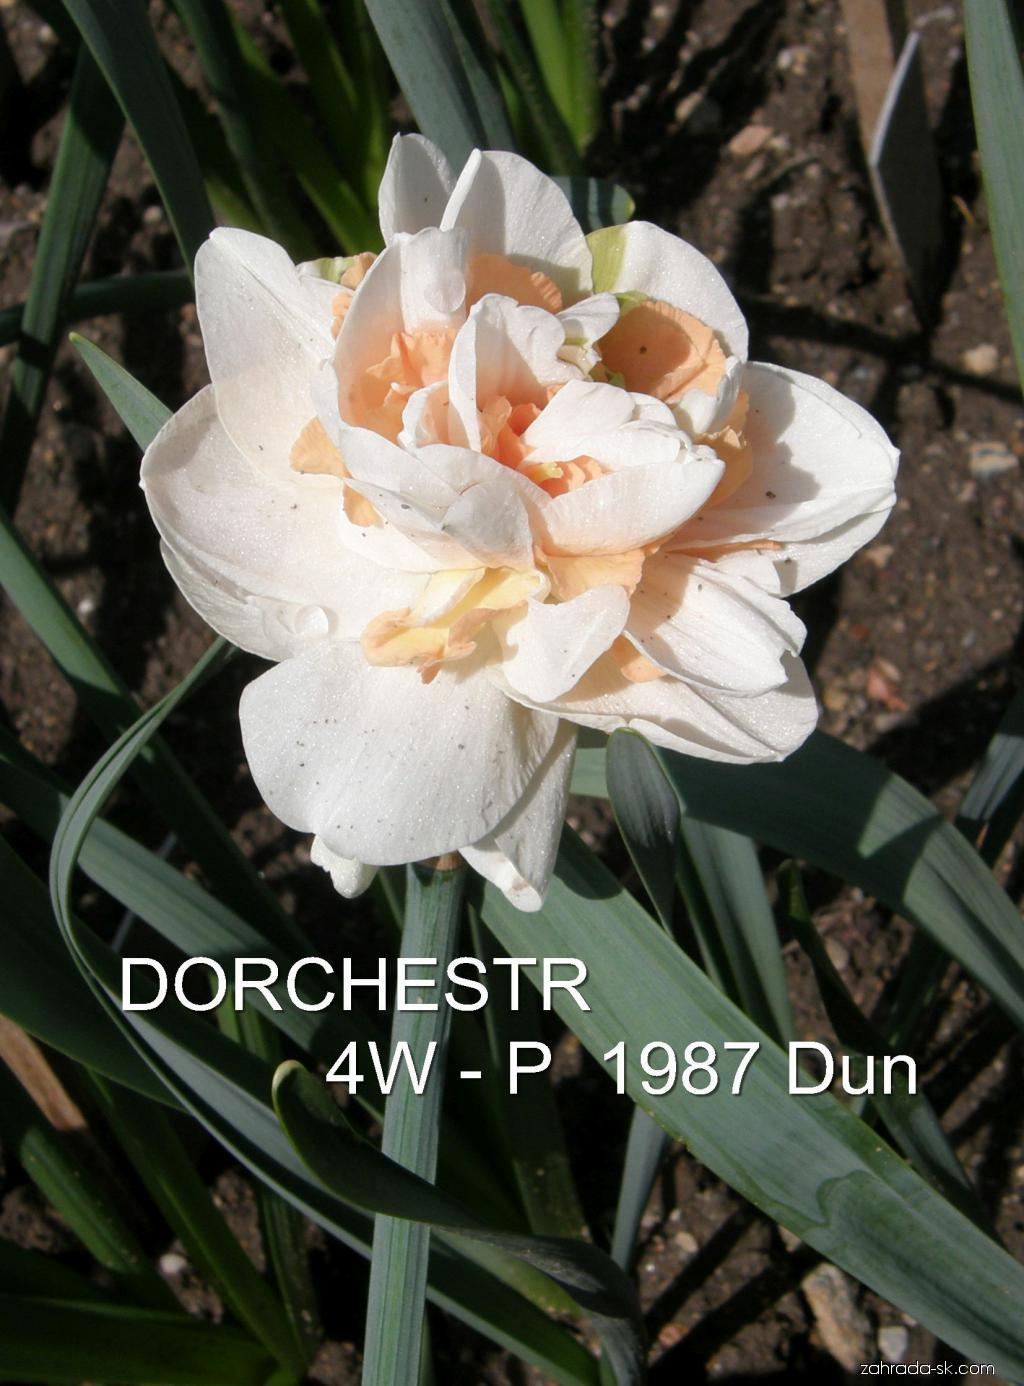 Narcis - Narcissus Dorchester